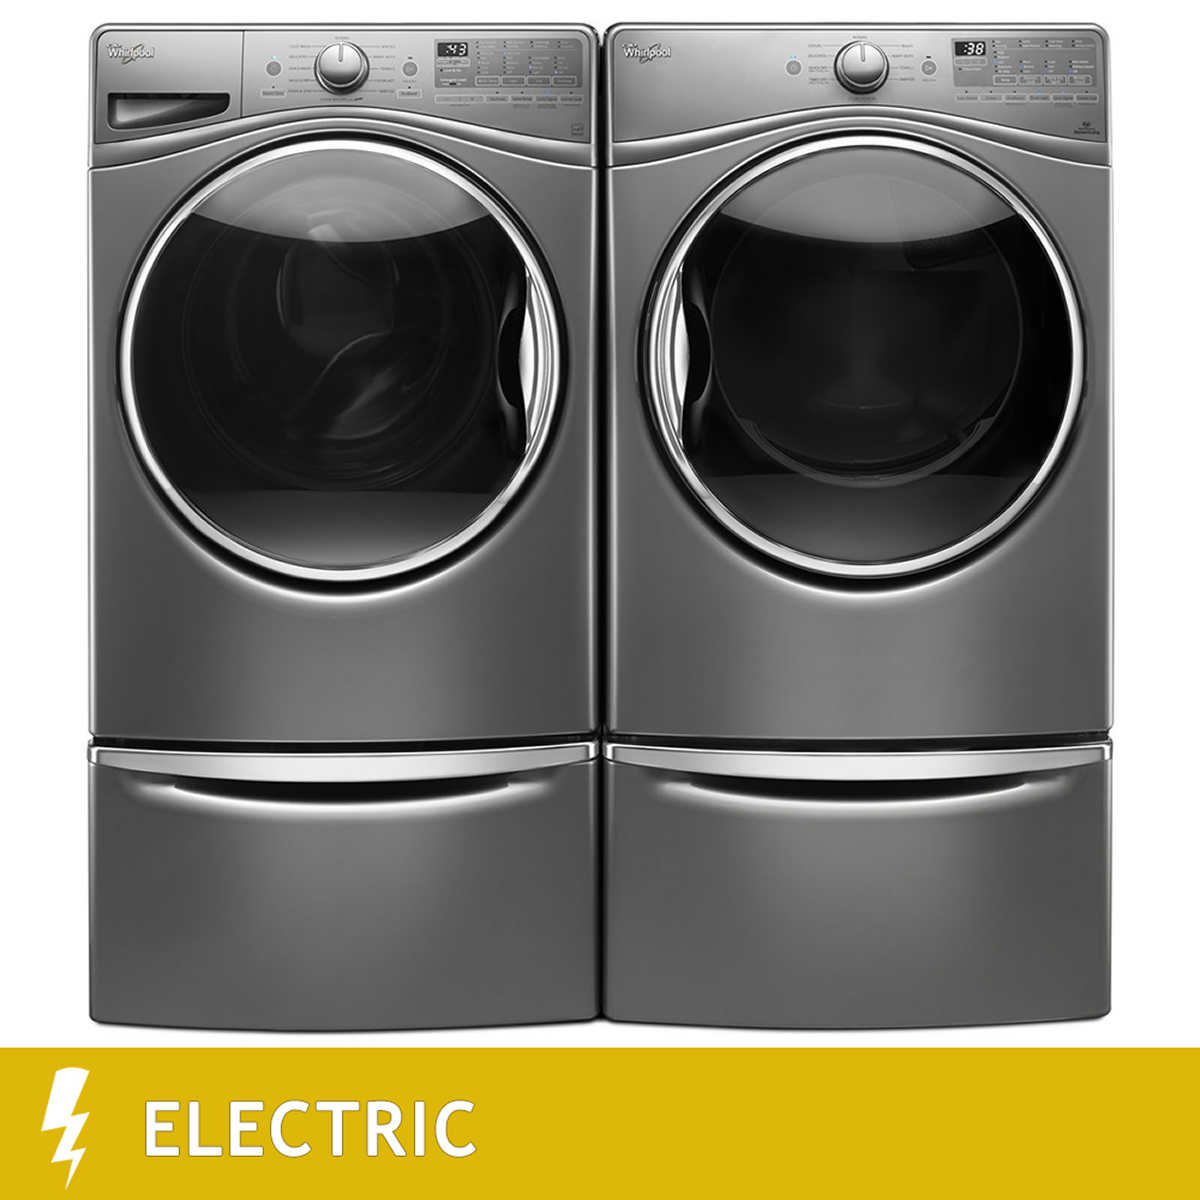 Whirlpool white ice costco - Out Of Stock Whirlpool Steam Clean 4 5cuft With Load Go Bulk Dispenser Washer 7 4cuft Electric Steam